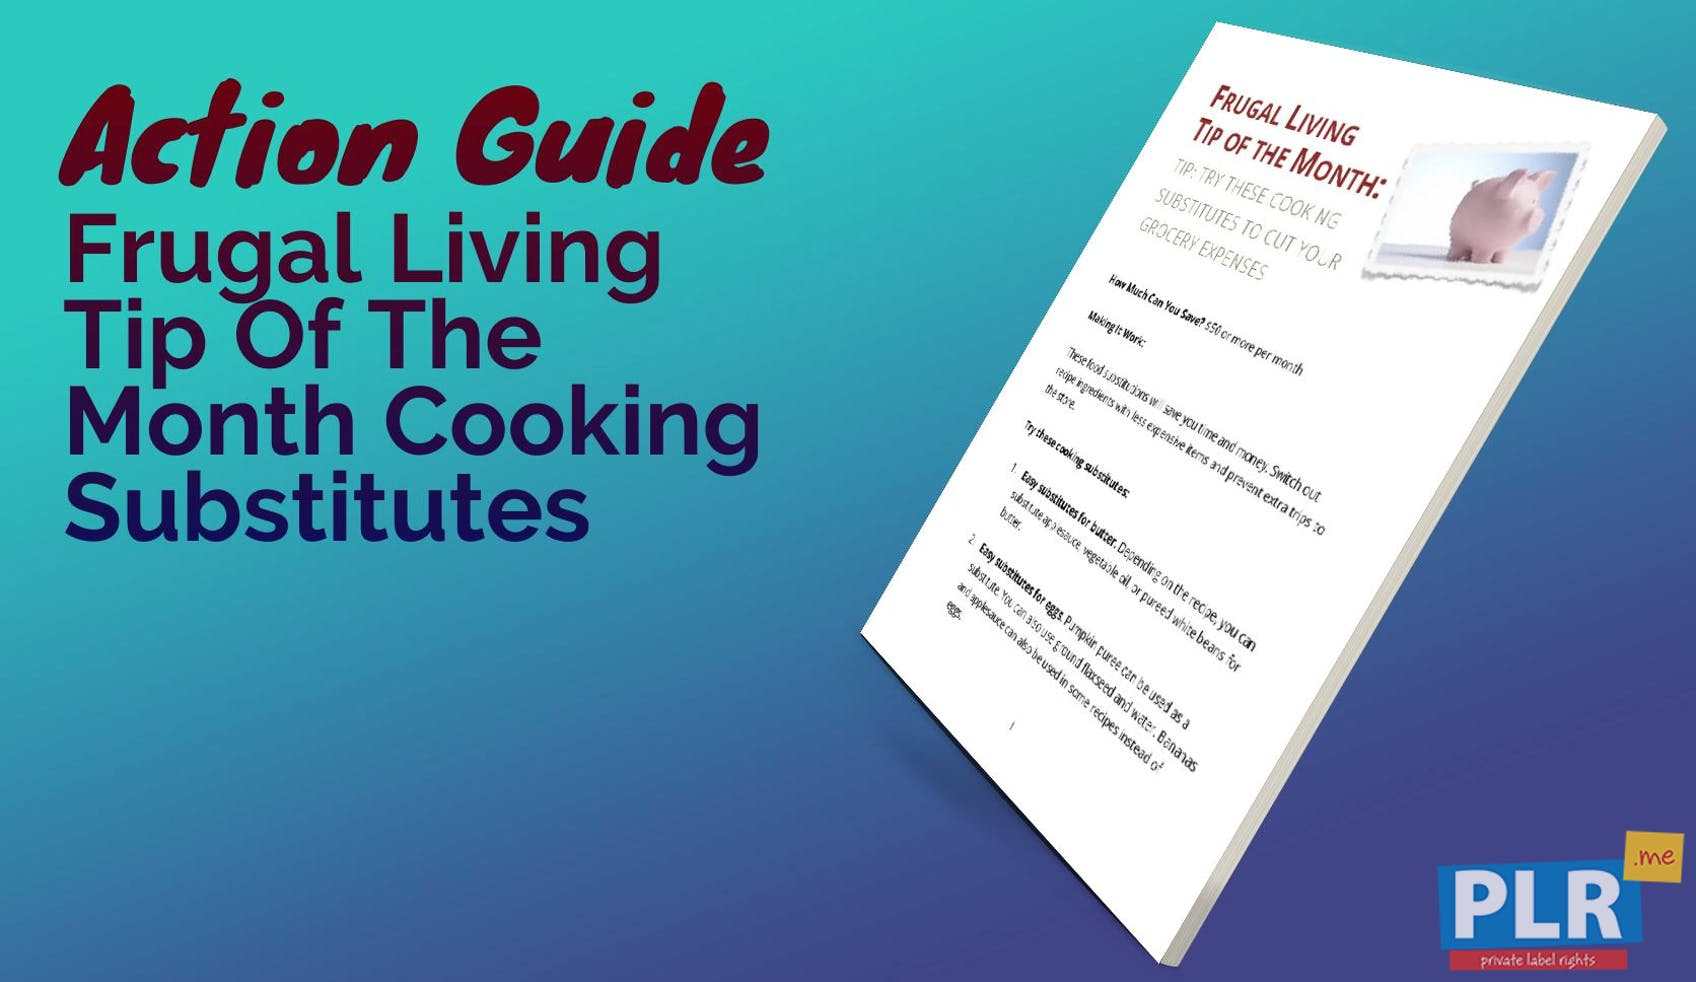 Frugal Living Tip Of The Month Cooking Substitutes